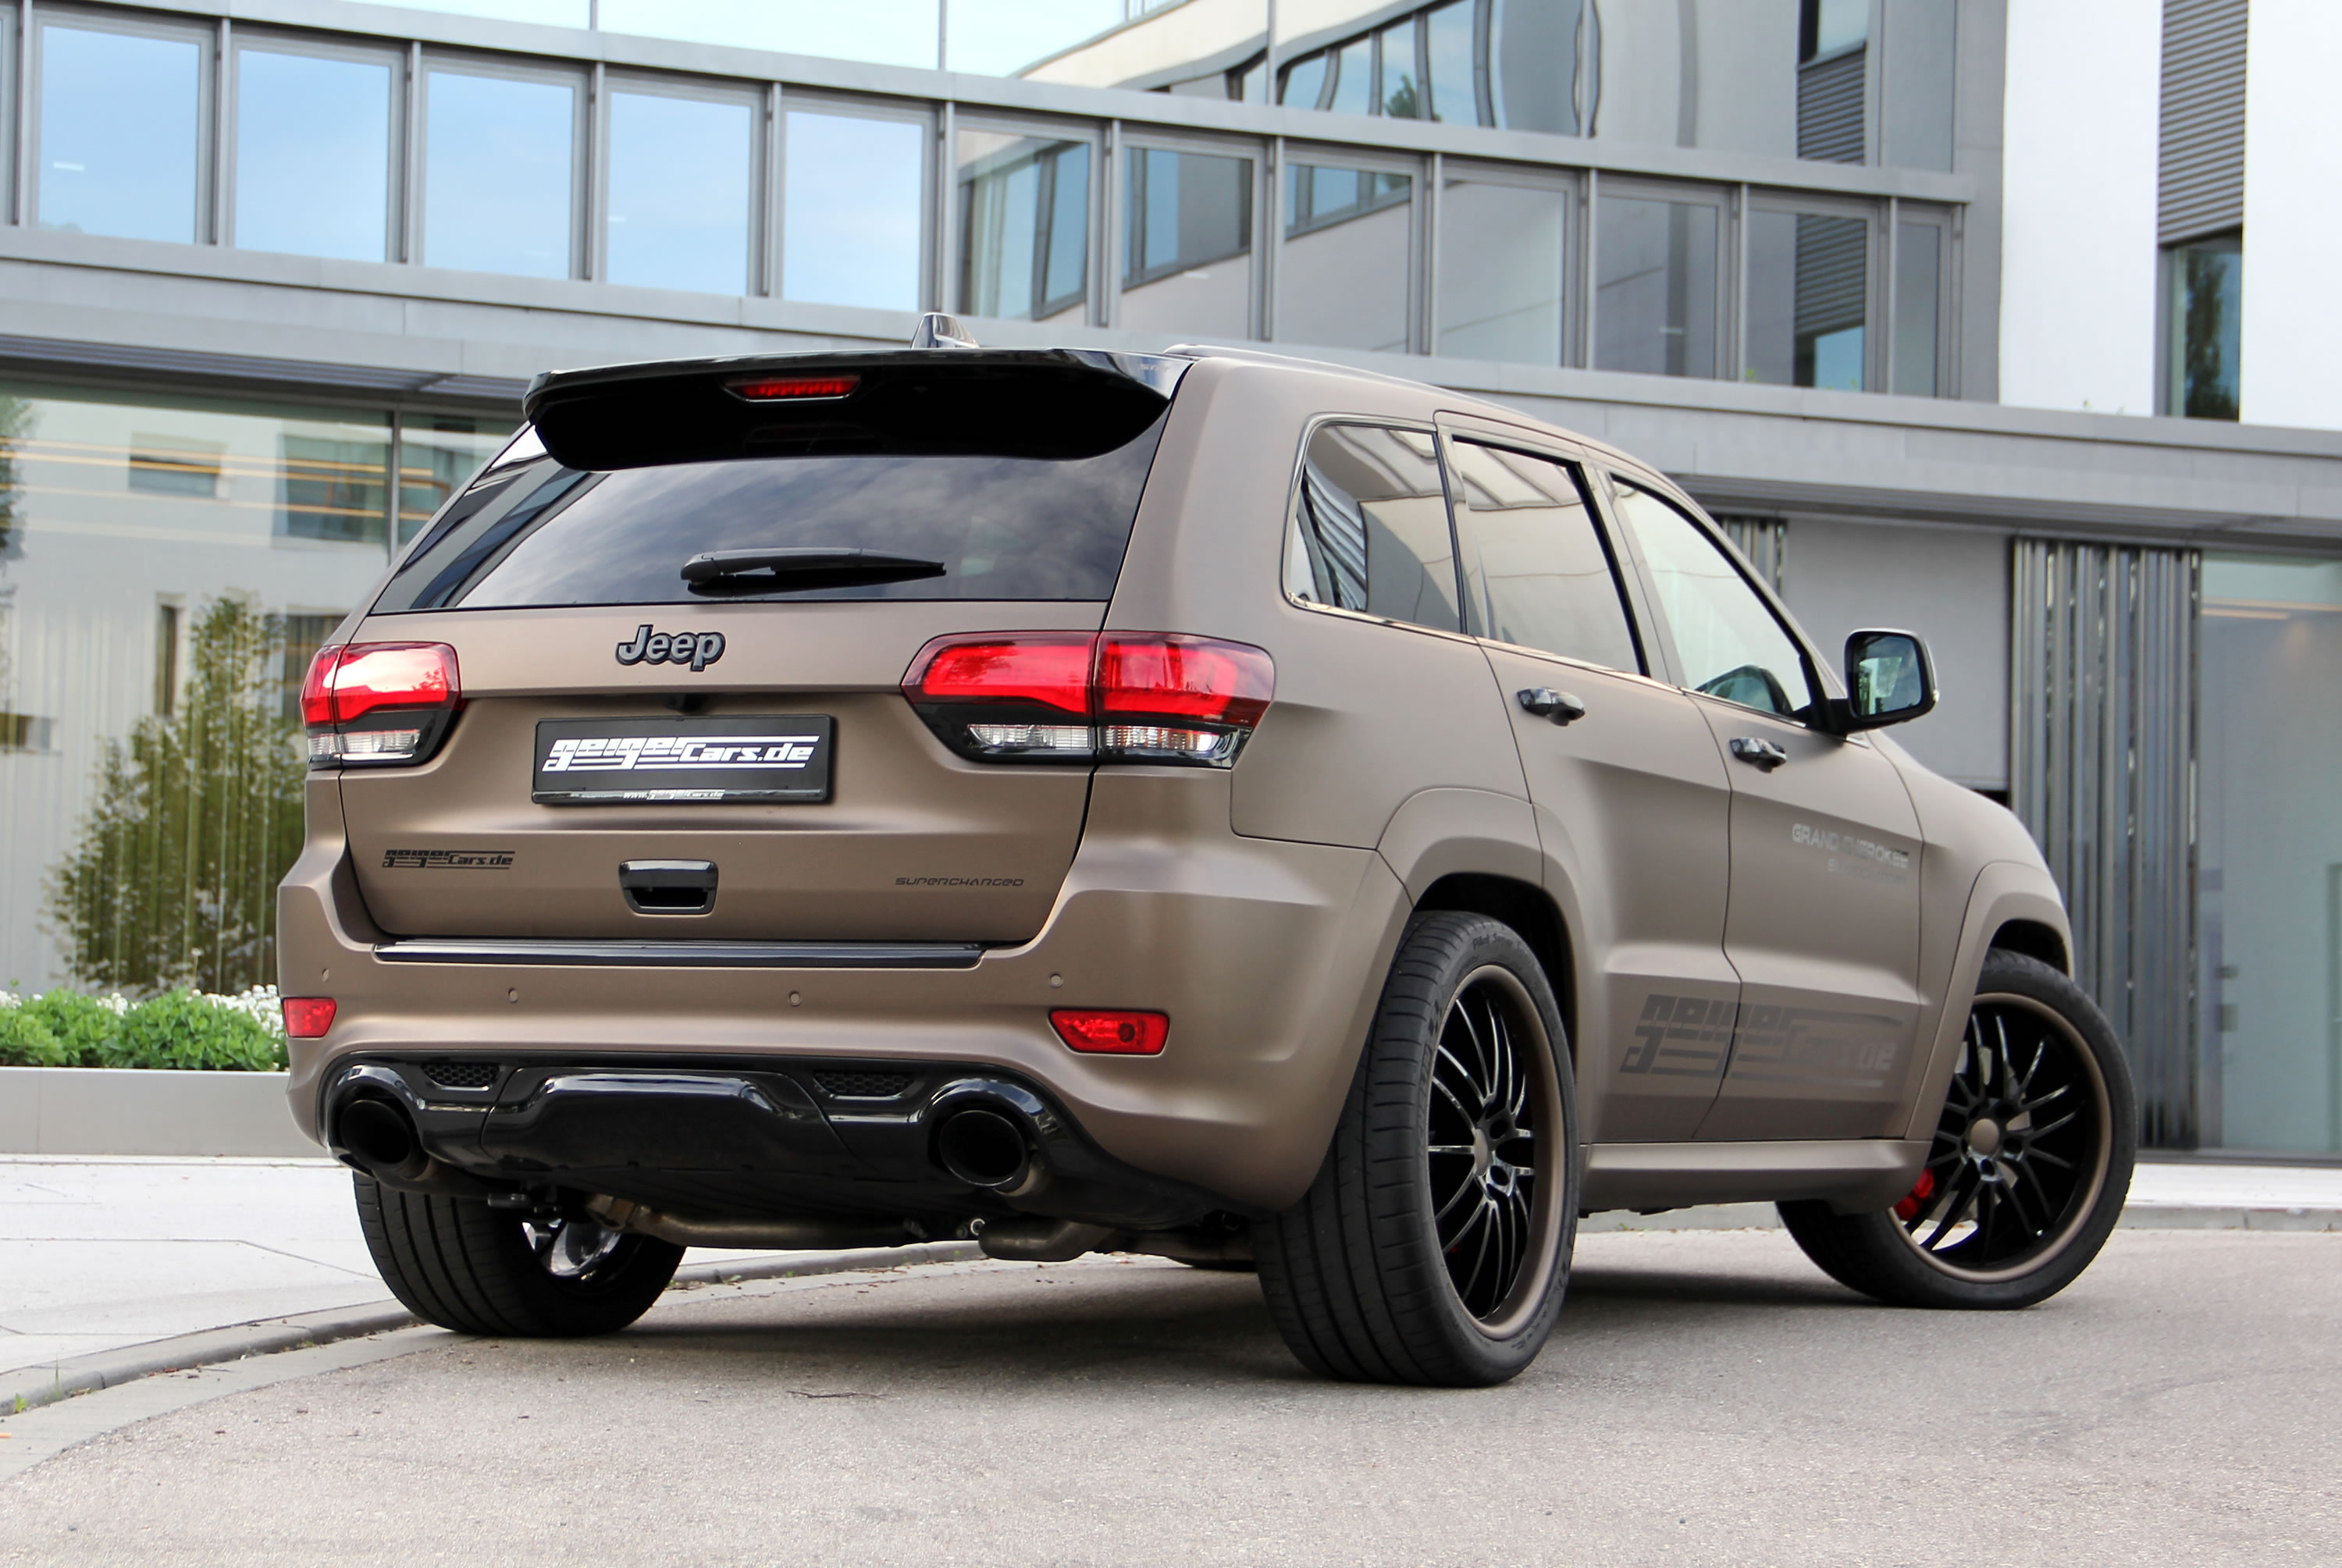 2015 Jeep Gran Cherokee SRT by GeigerCars s Specs and Review RS